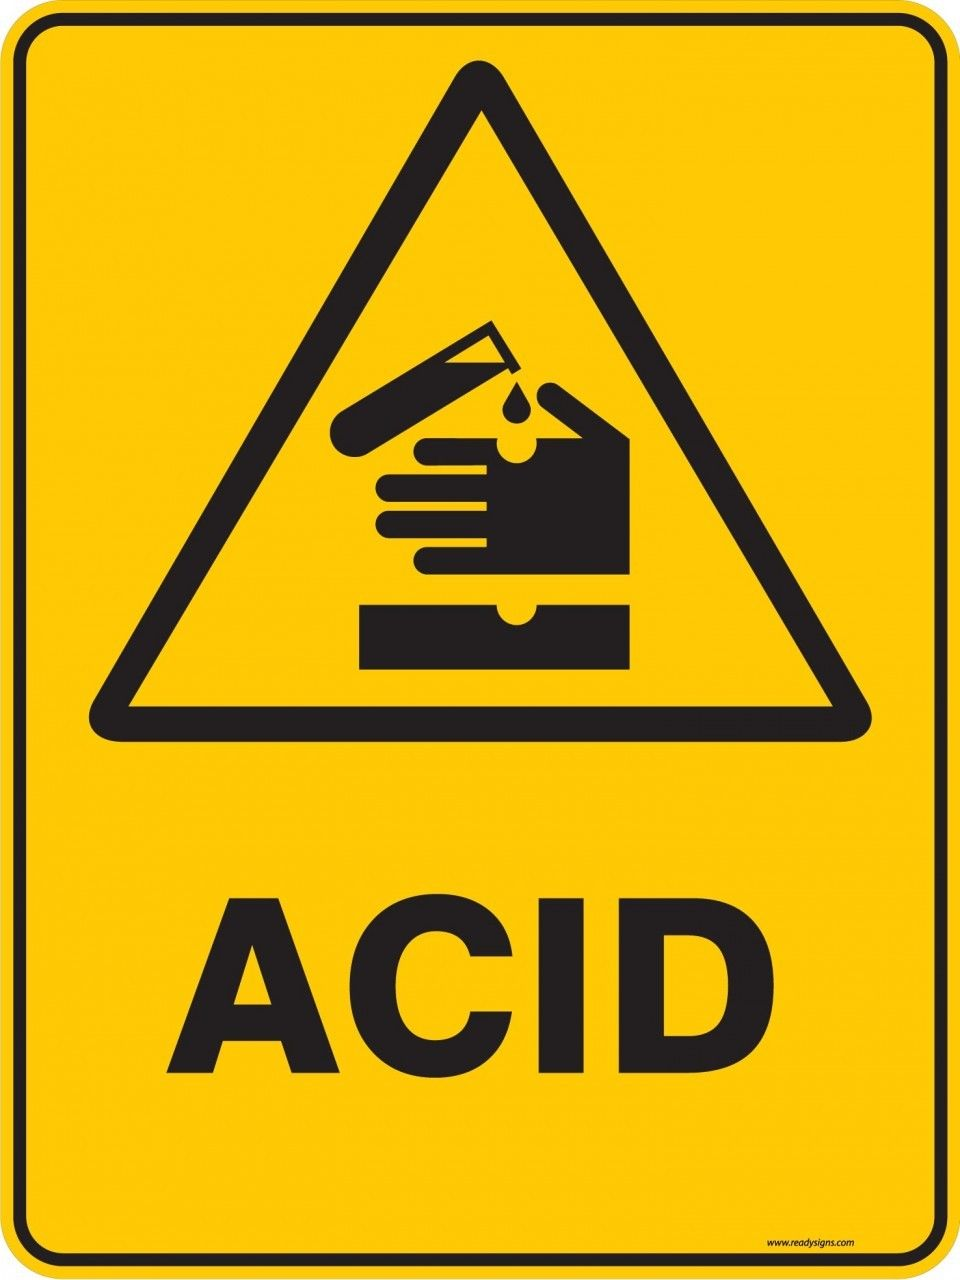 Warning sign acid warning signs warning signs buycottarizona Image collections